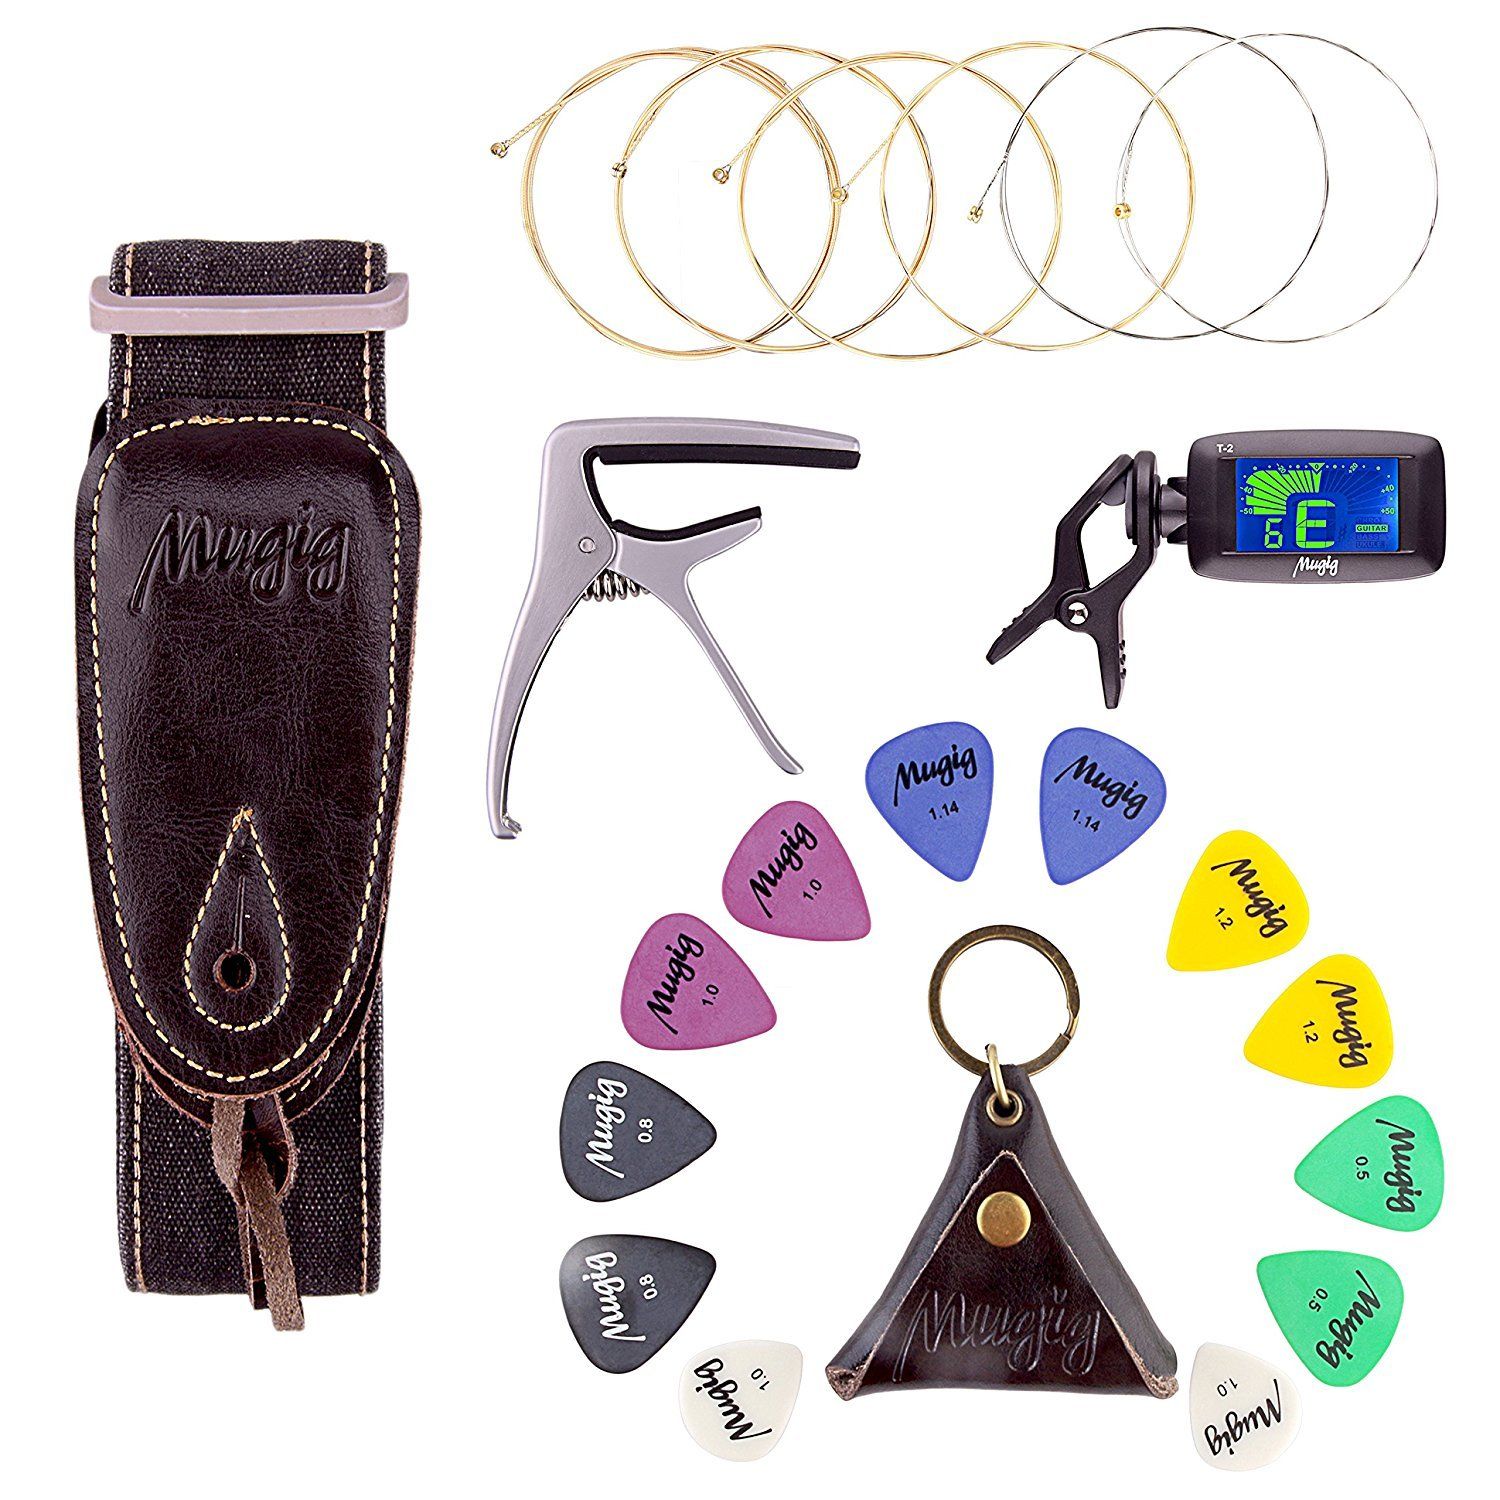 Mugig Guitar Accessories Kit With Tuner Capo Strap Strings Picks Designed For Acoustic Guitar, Beginner Friendly